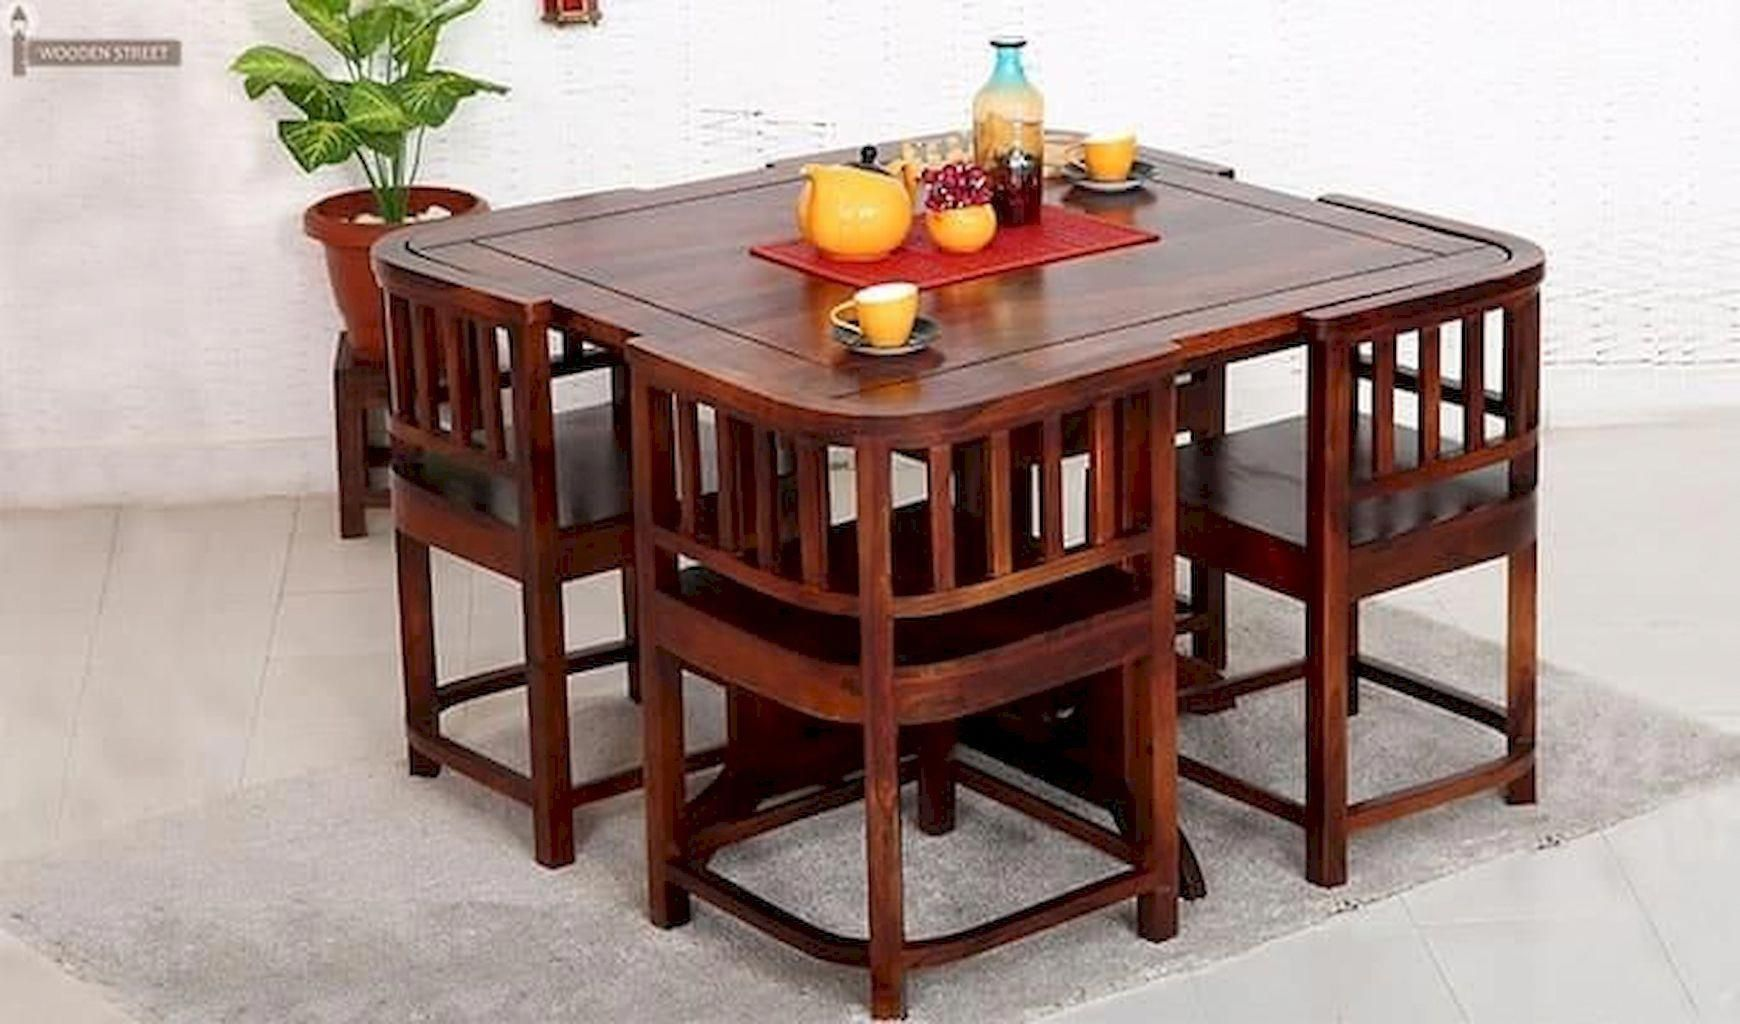 27+ Small dining table with chairs that fit underneath Ideas